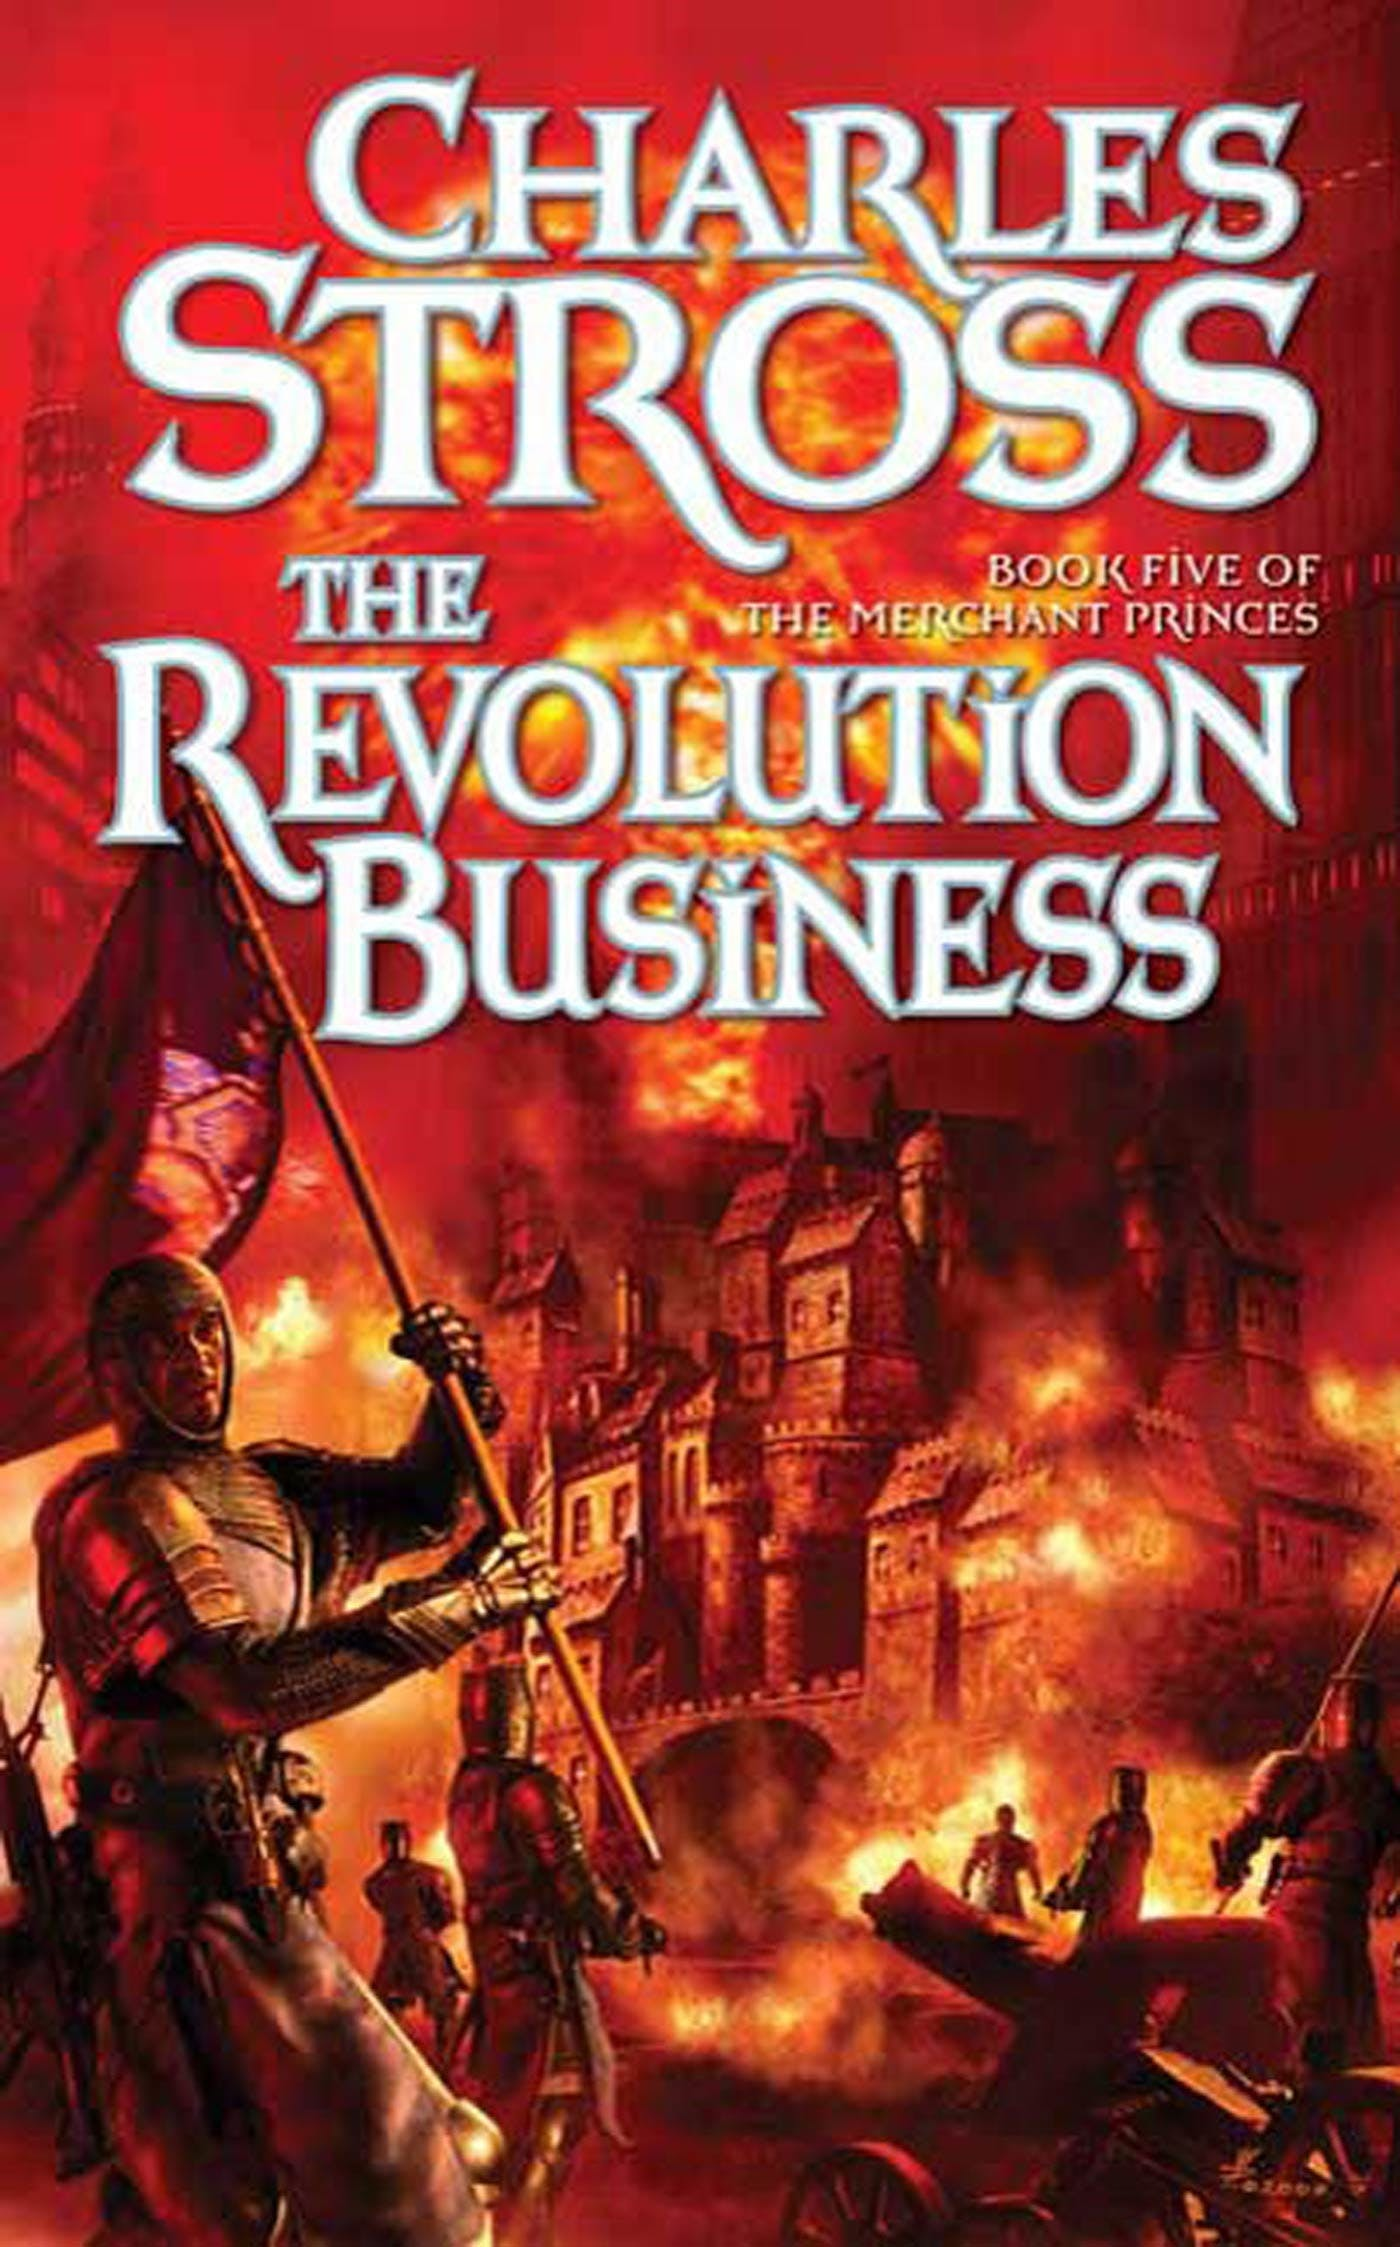 Image of The Revolution Business